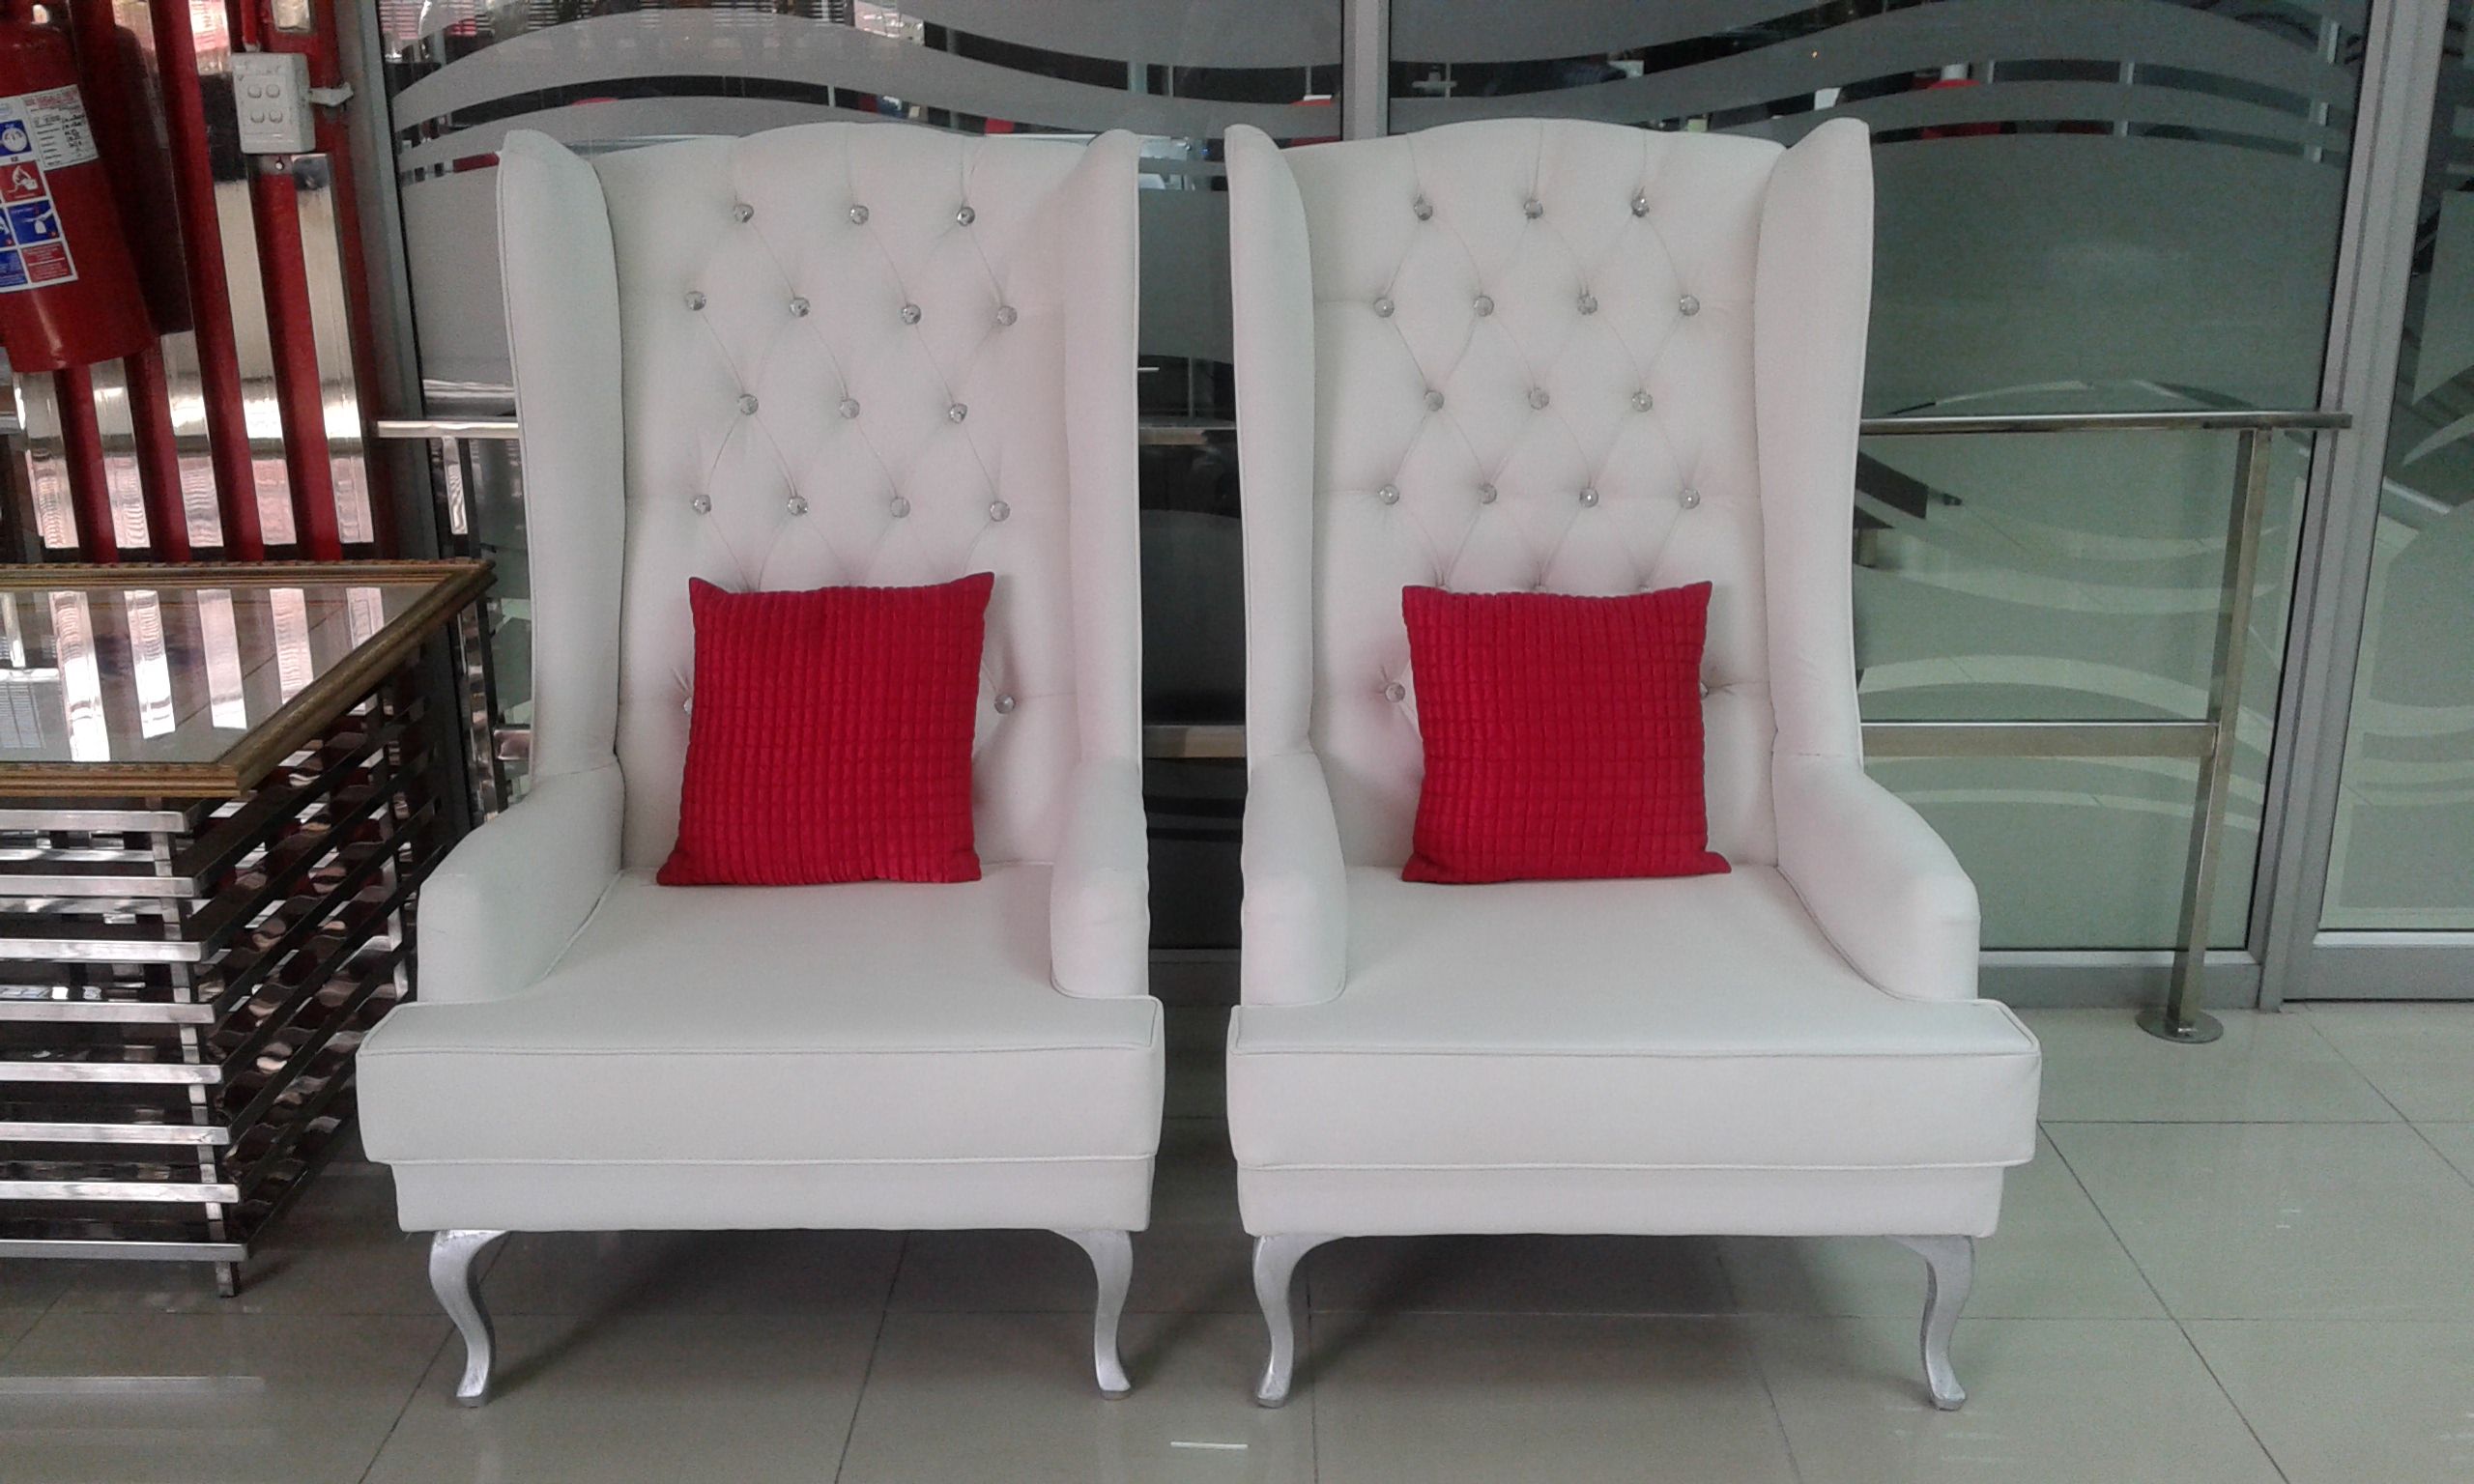 wedding chairs for sale wedding chairs manufacturers south africa. Black Bedroom Furniture Sets. Home Design Ideas